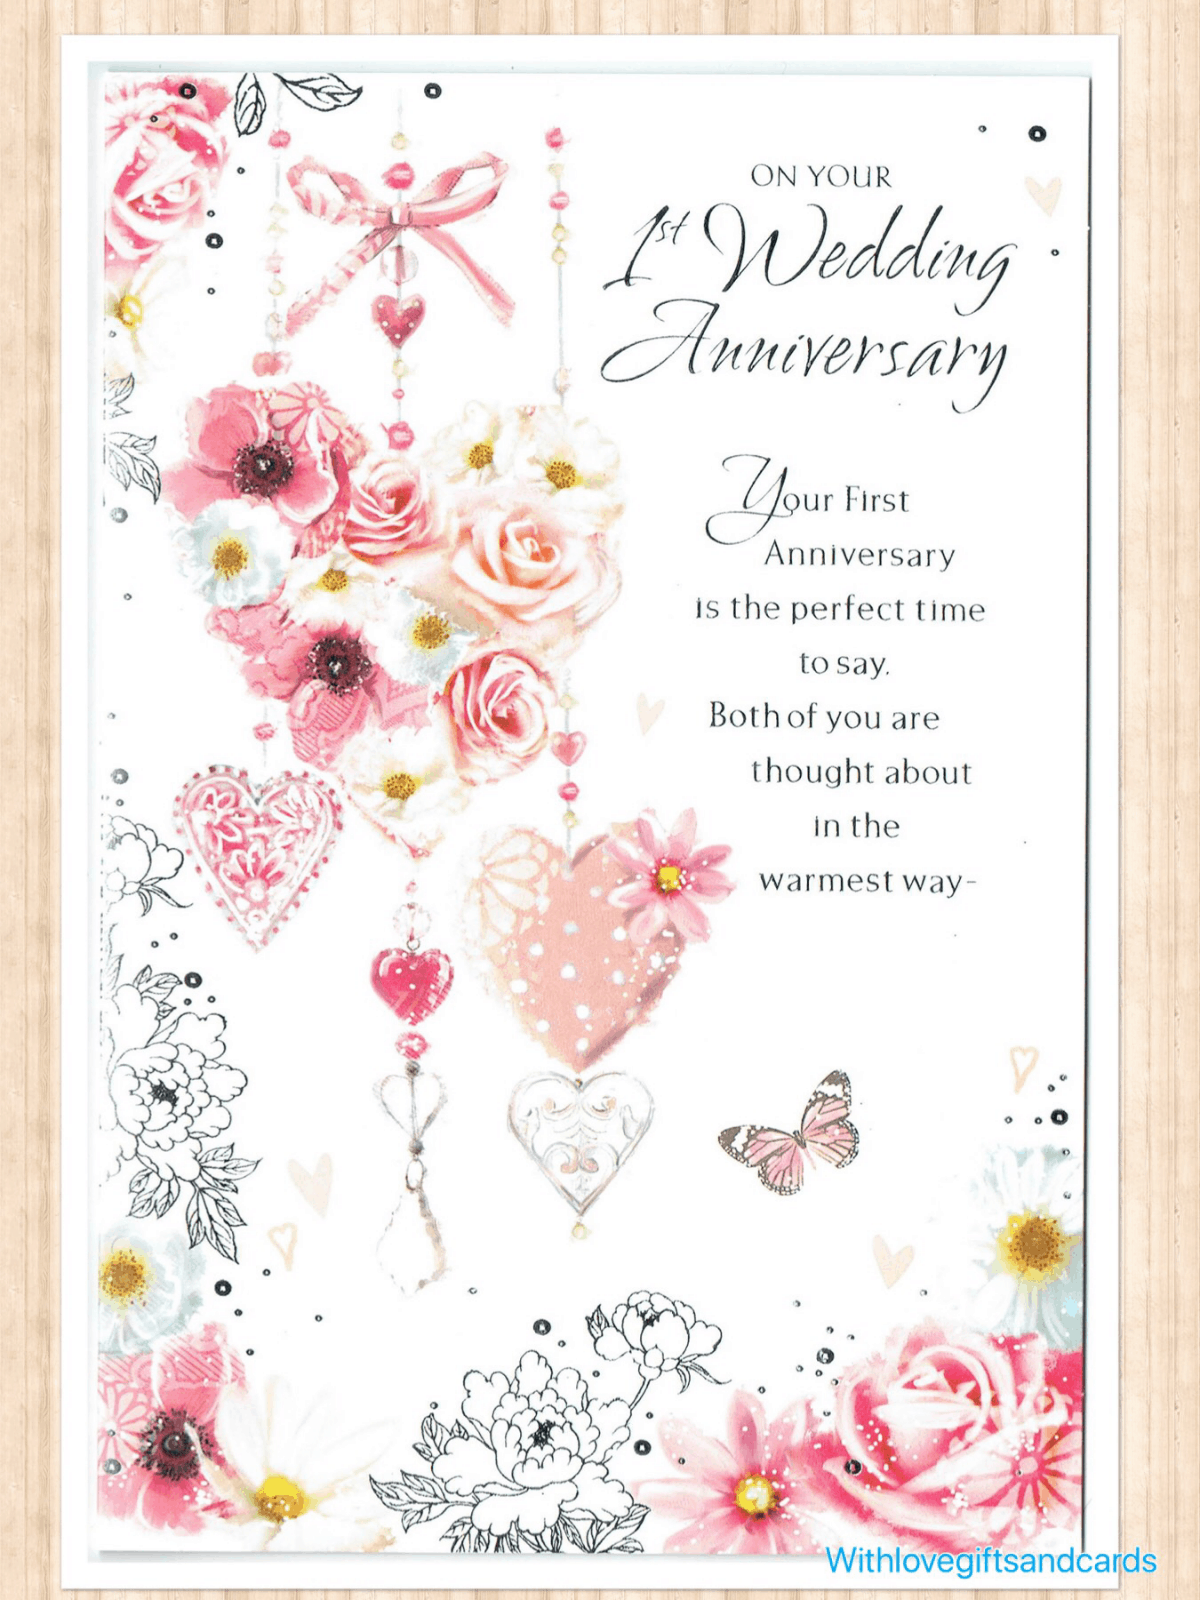 First Wedding Anniversary.Details About First 1st Wedding Anniversary Card With Flowers And Sentiment Verse